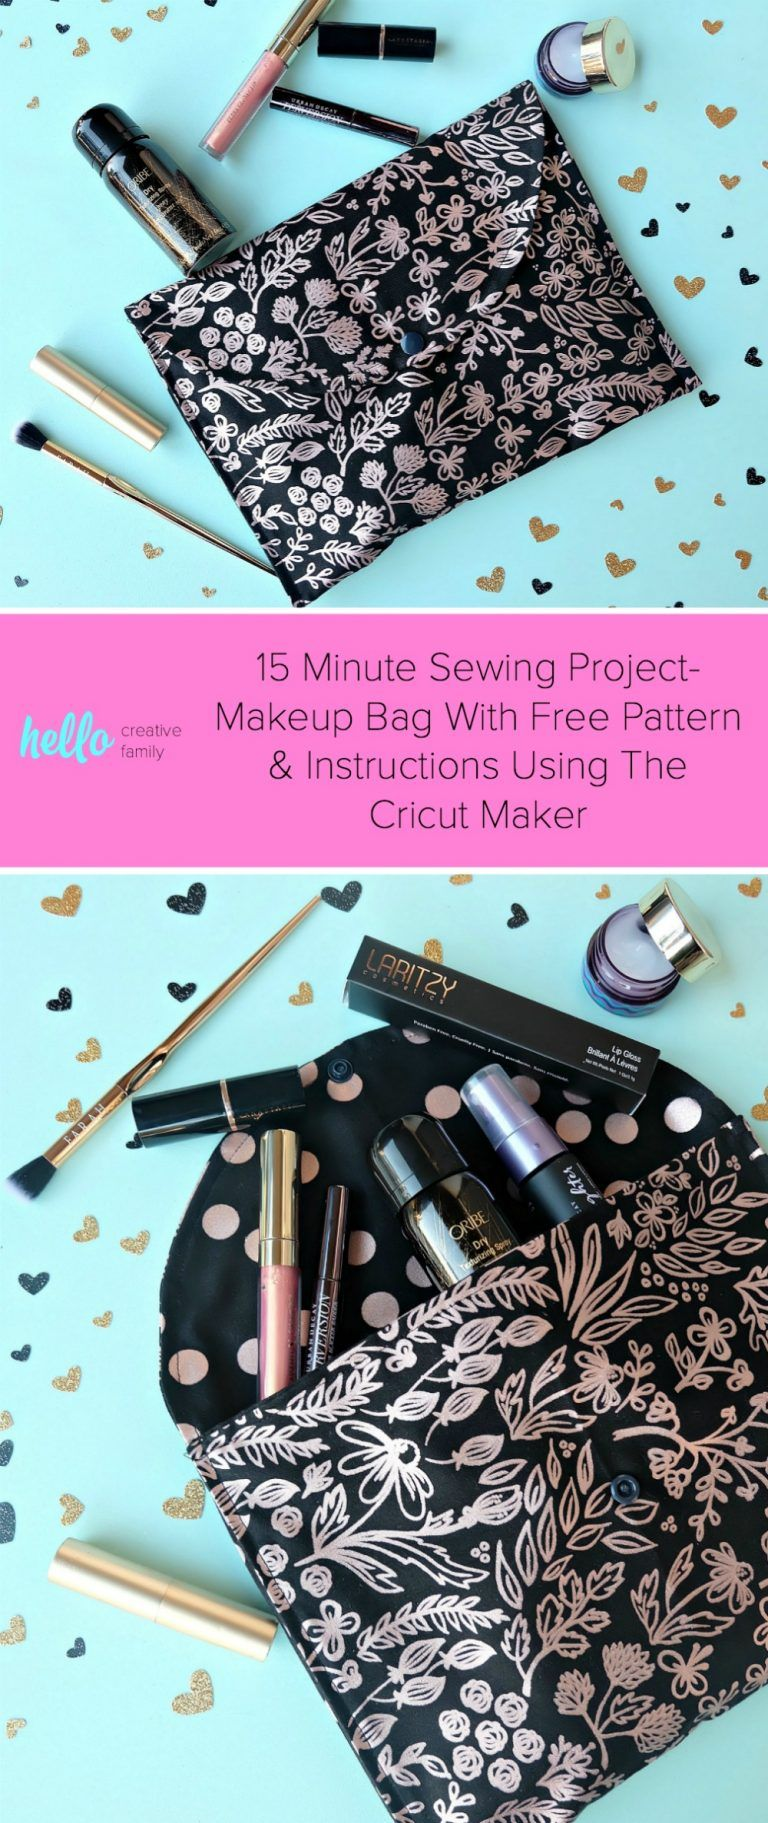 15 Minute Sewing Project